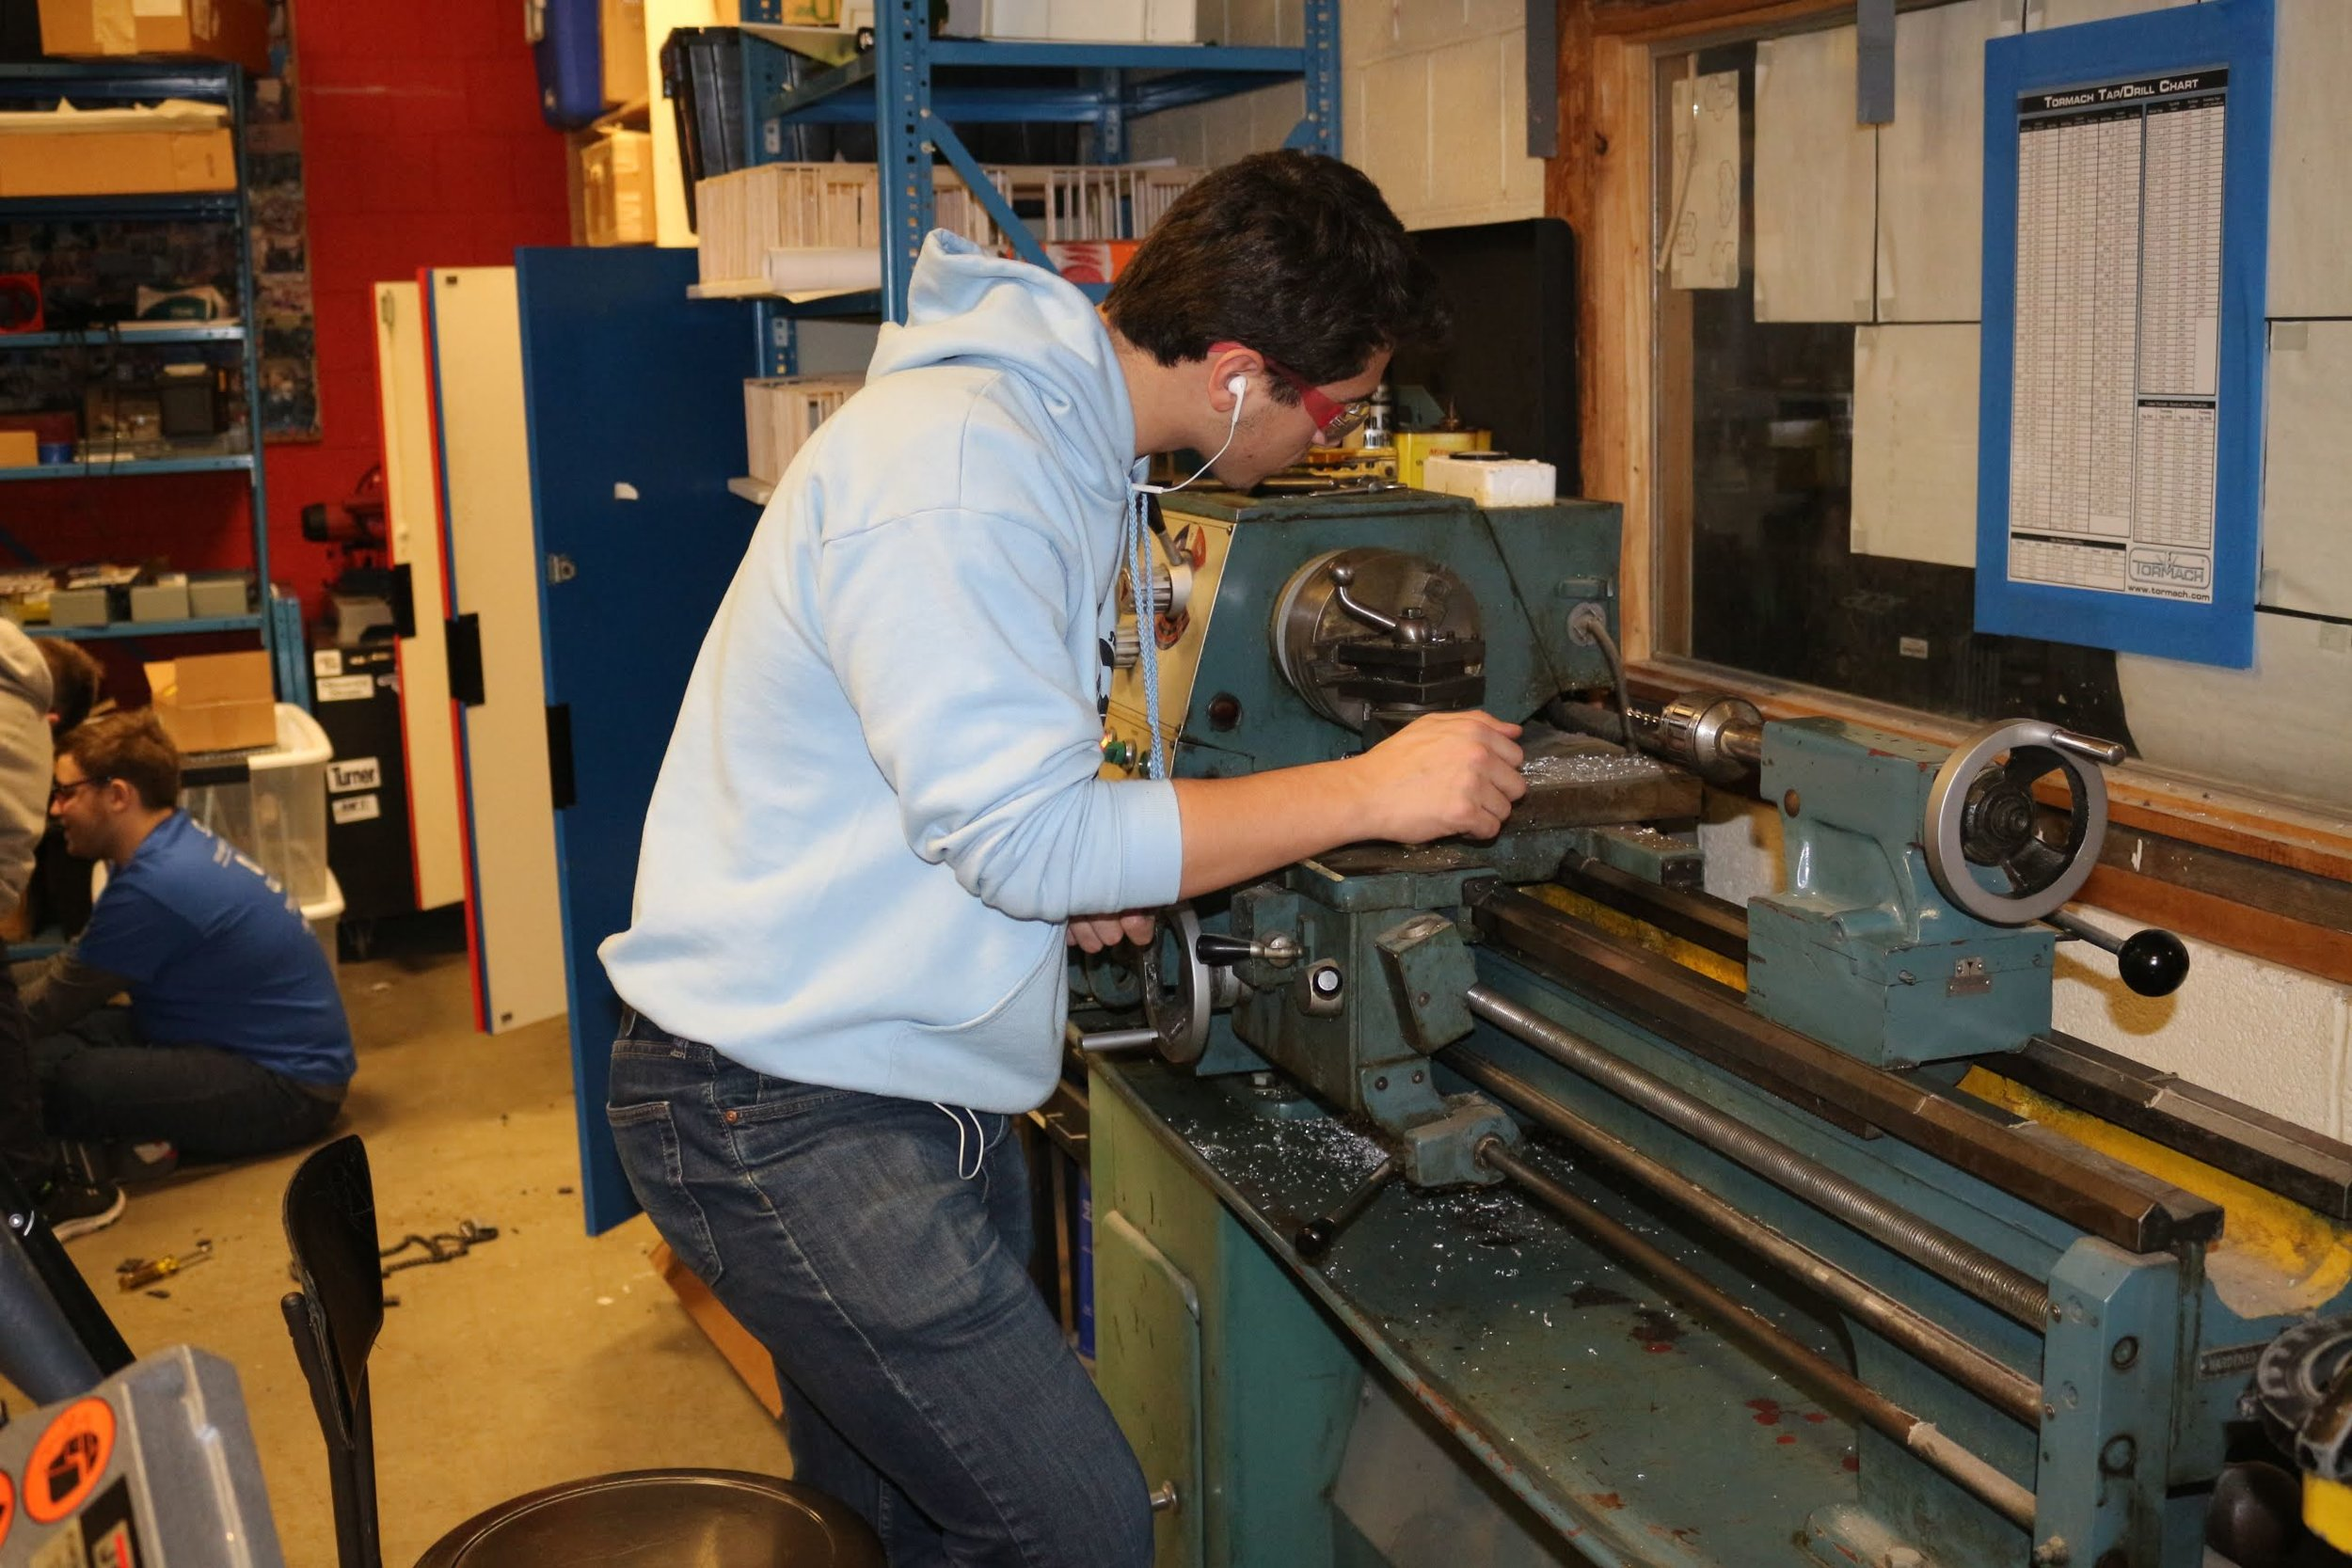 - We still use the metal lathe that was in the shop back in 1974 when the school was built. (Mr. Kissane was a freshman at AHS in 1974 and used this lathe then)